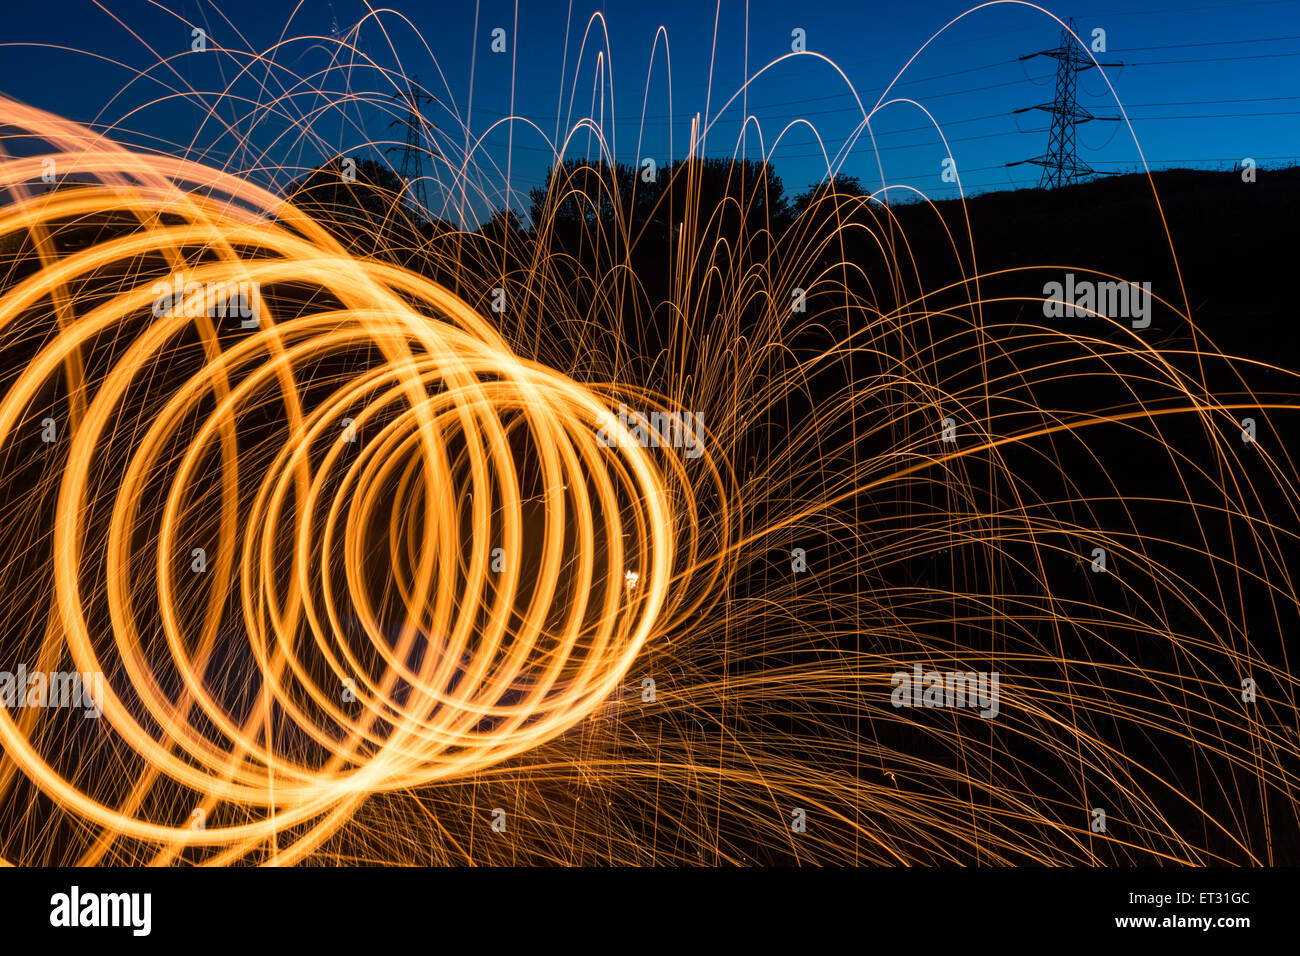 Steel photography light trails - Stock Image